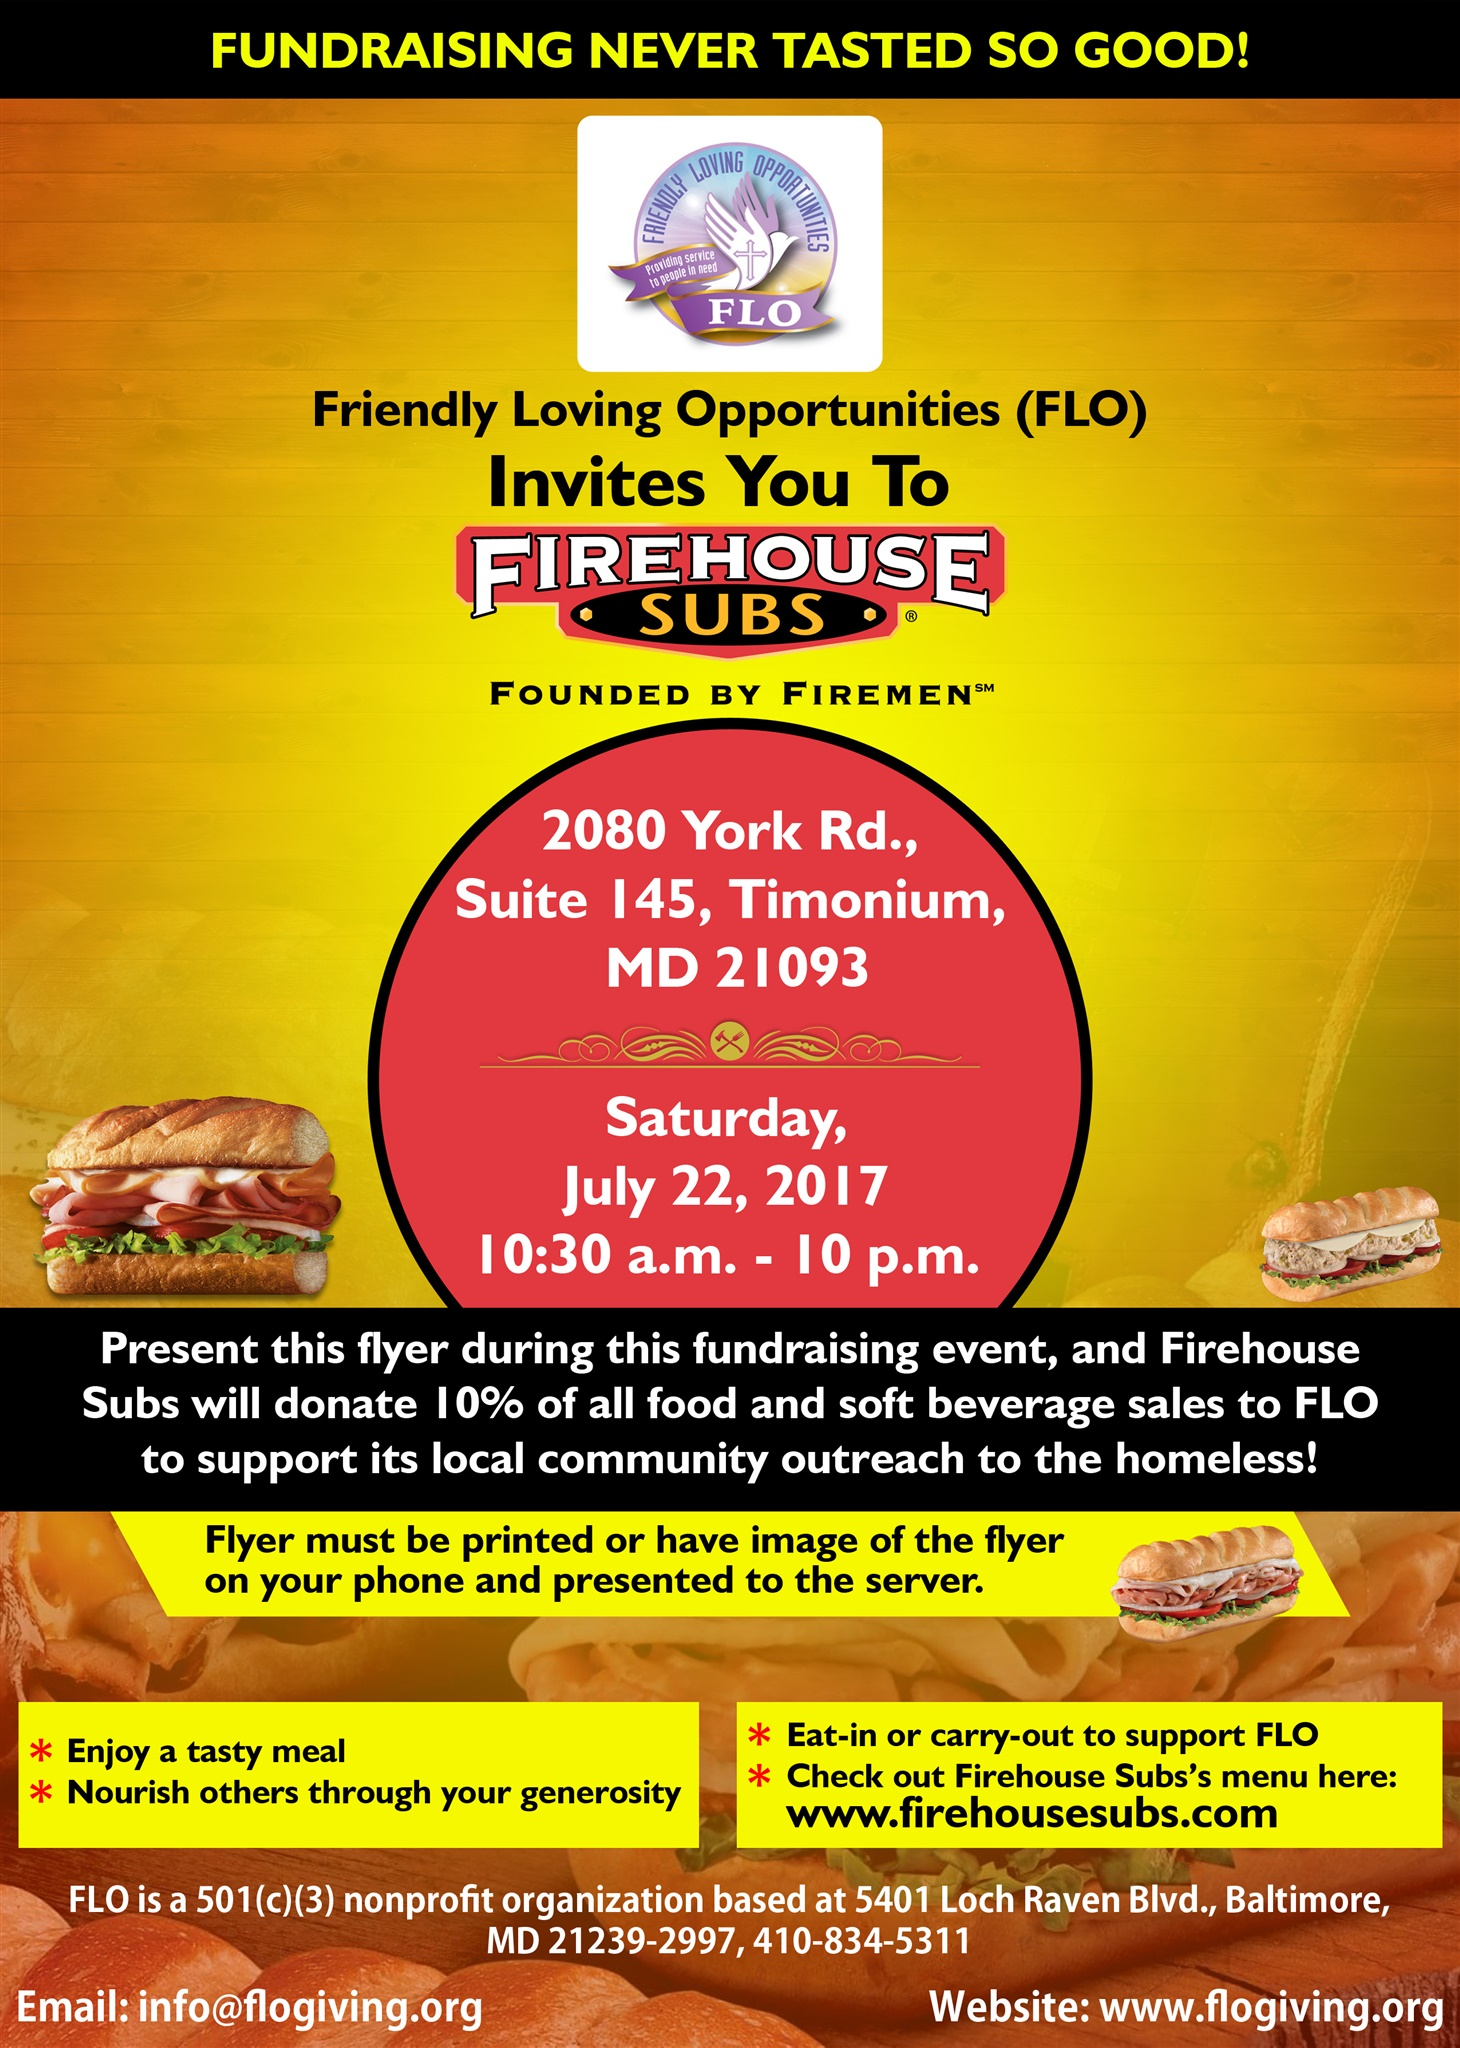 FLO's Fundraiser at Firehouse Subs